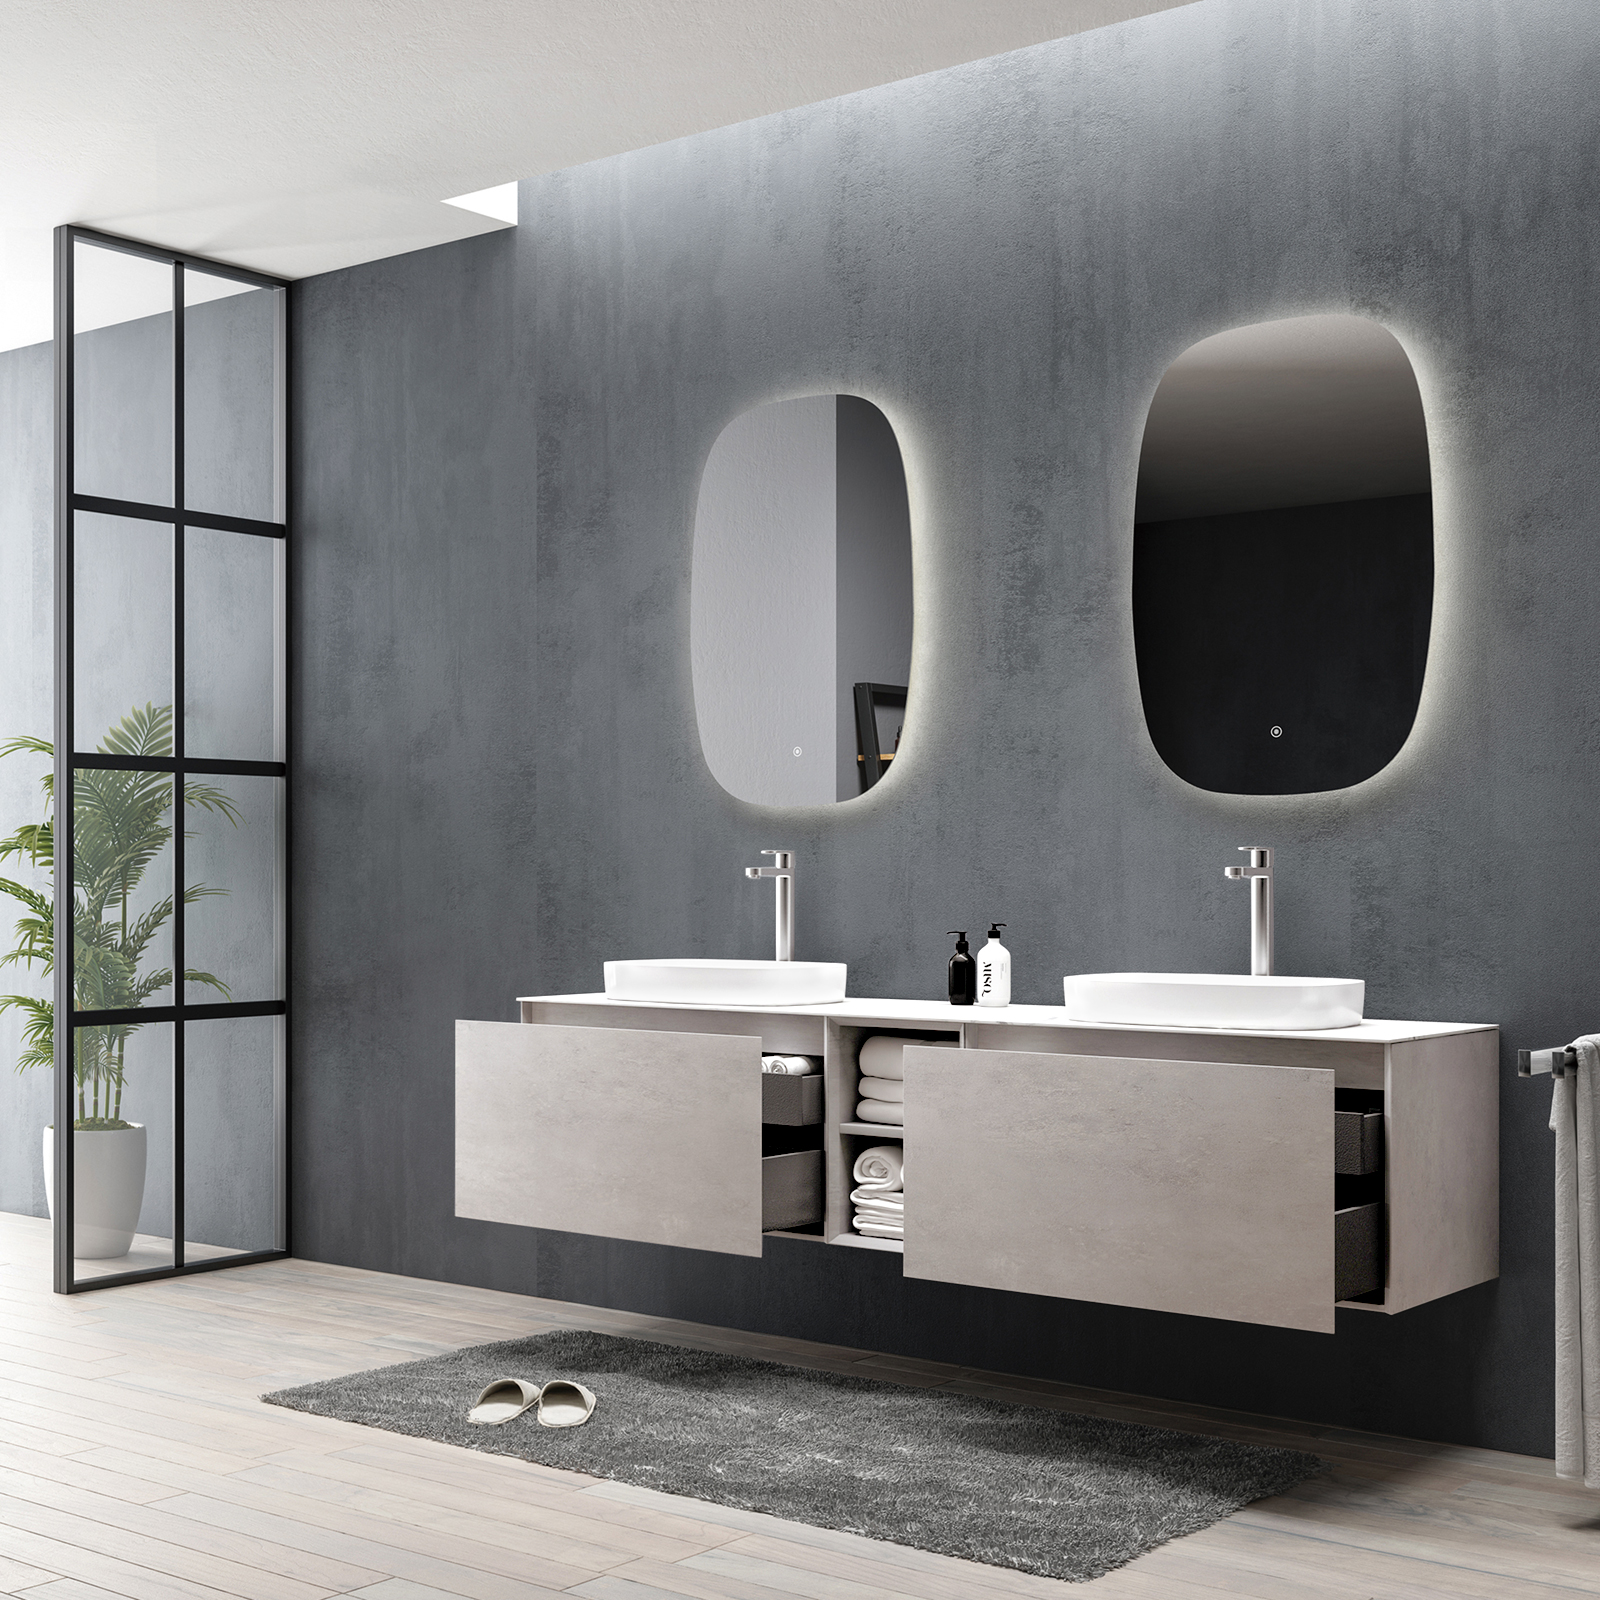 Bathroom Furniture Set INALCO 1900 - Concrete Effect  - mirror optional